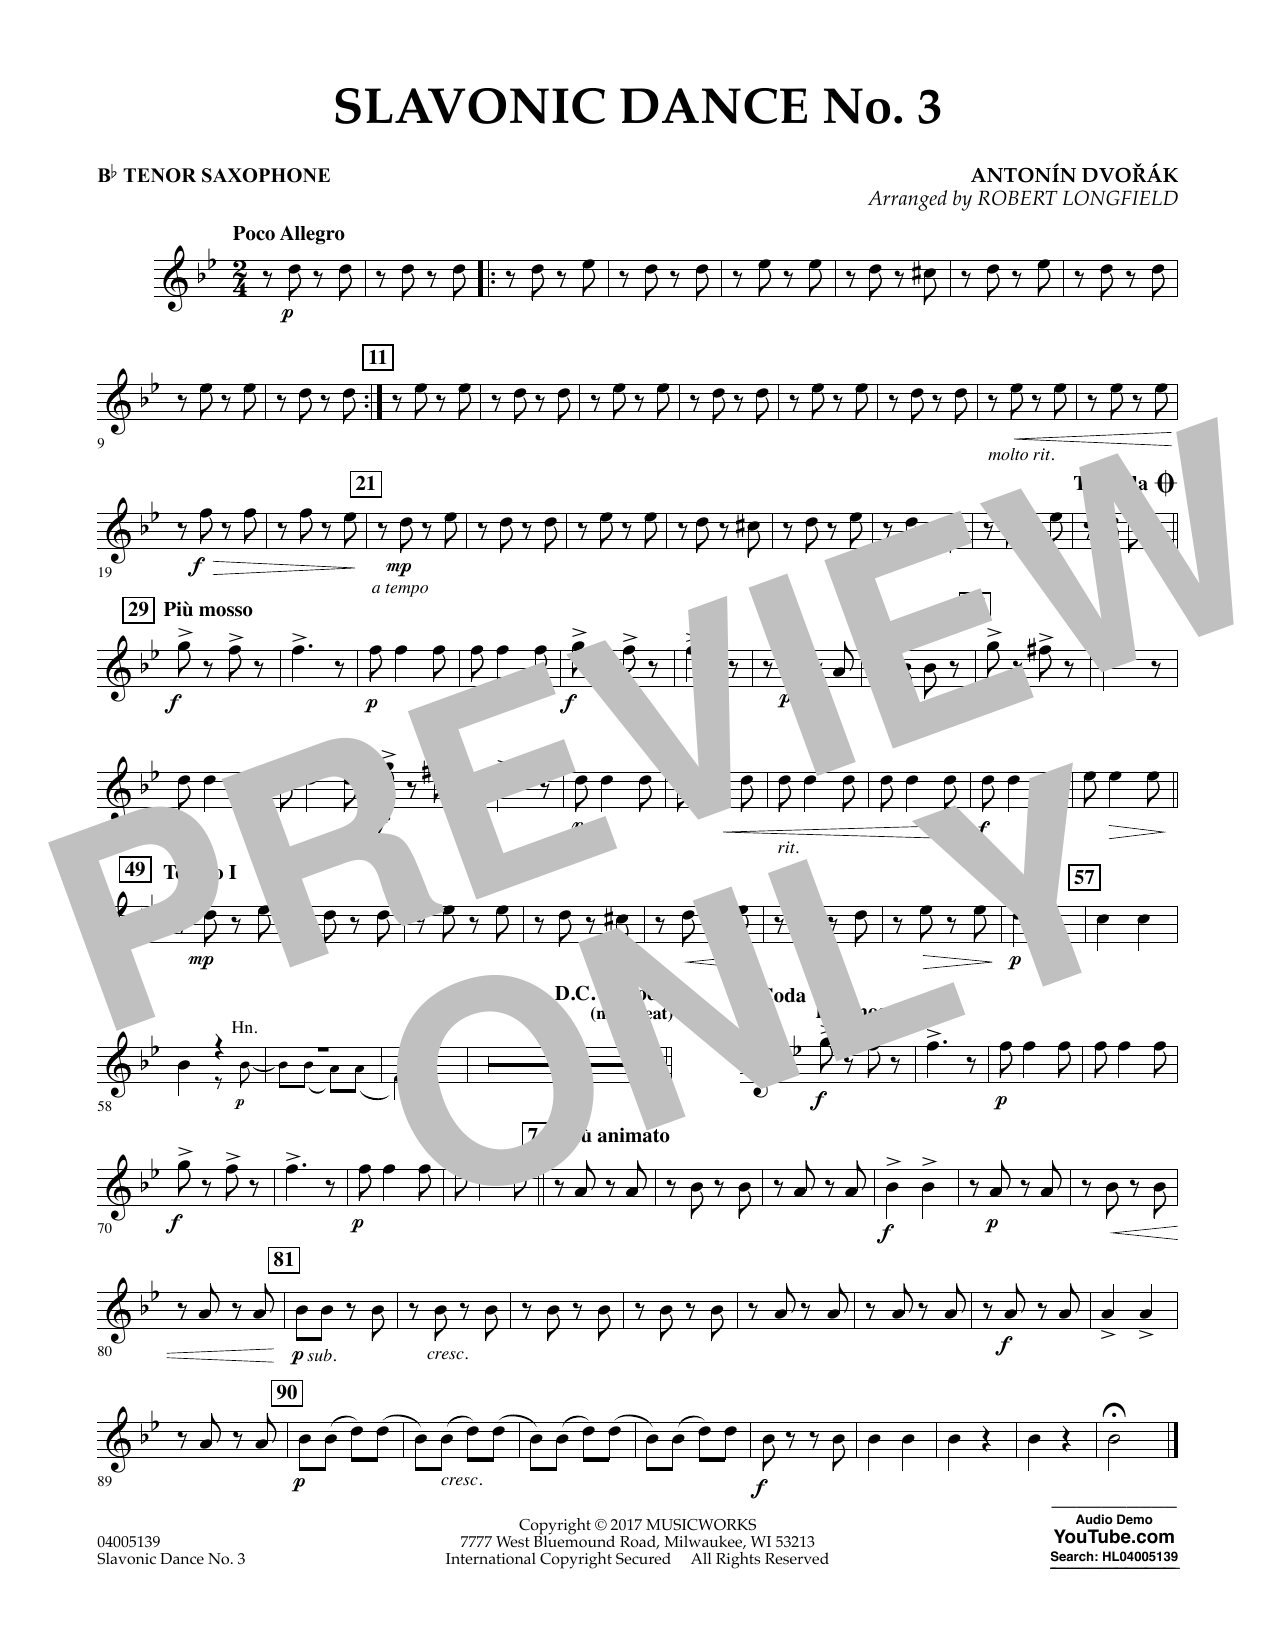 Robert Longfield Slavonic Dance No. 3 - Bb Tenor Saxophone sheet music notes and chords. Download Printable PDF.